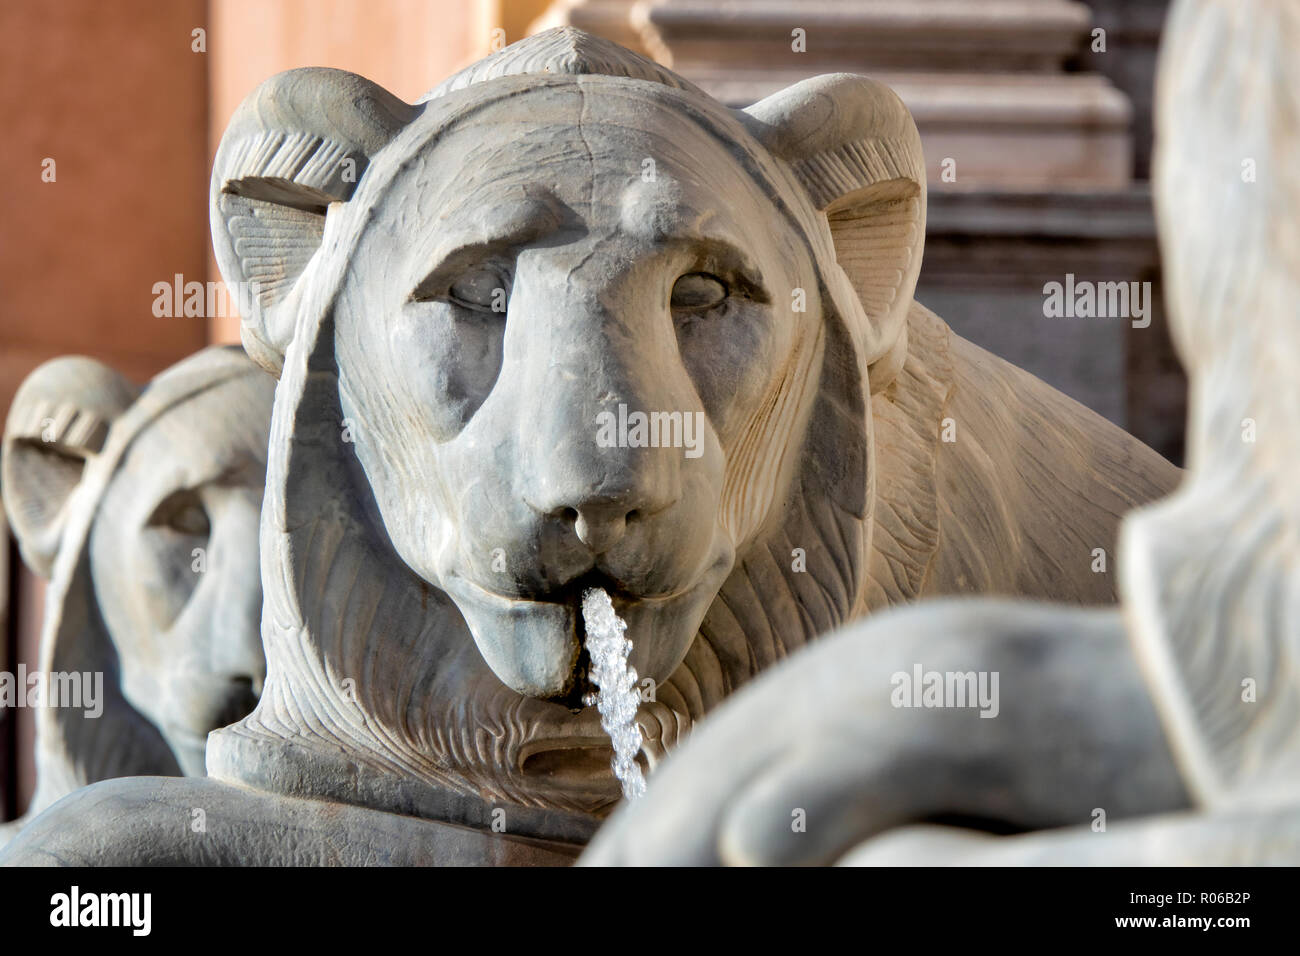 Close up shot of a statue of an egyptian lion in the Fontana dell'Acqua Felice ,  Rome Italy - Stock Image